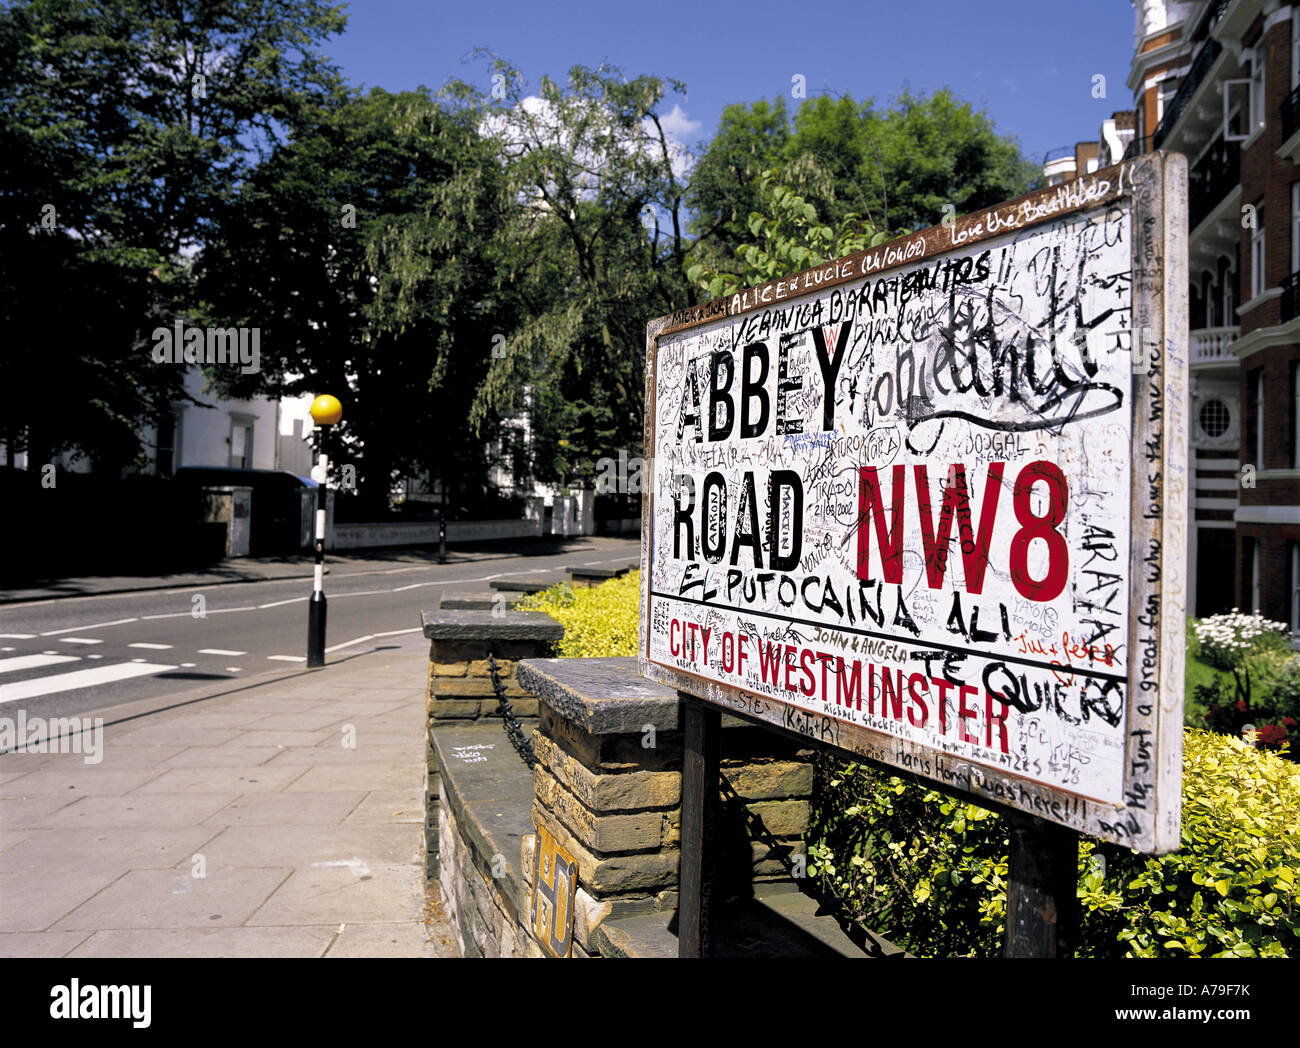 Los Beatles Abbey Road de Londres, Inglaterra Imagen De Stock